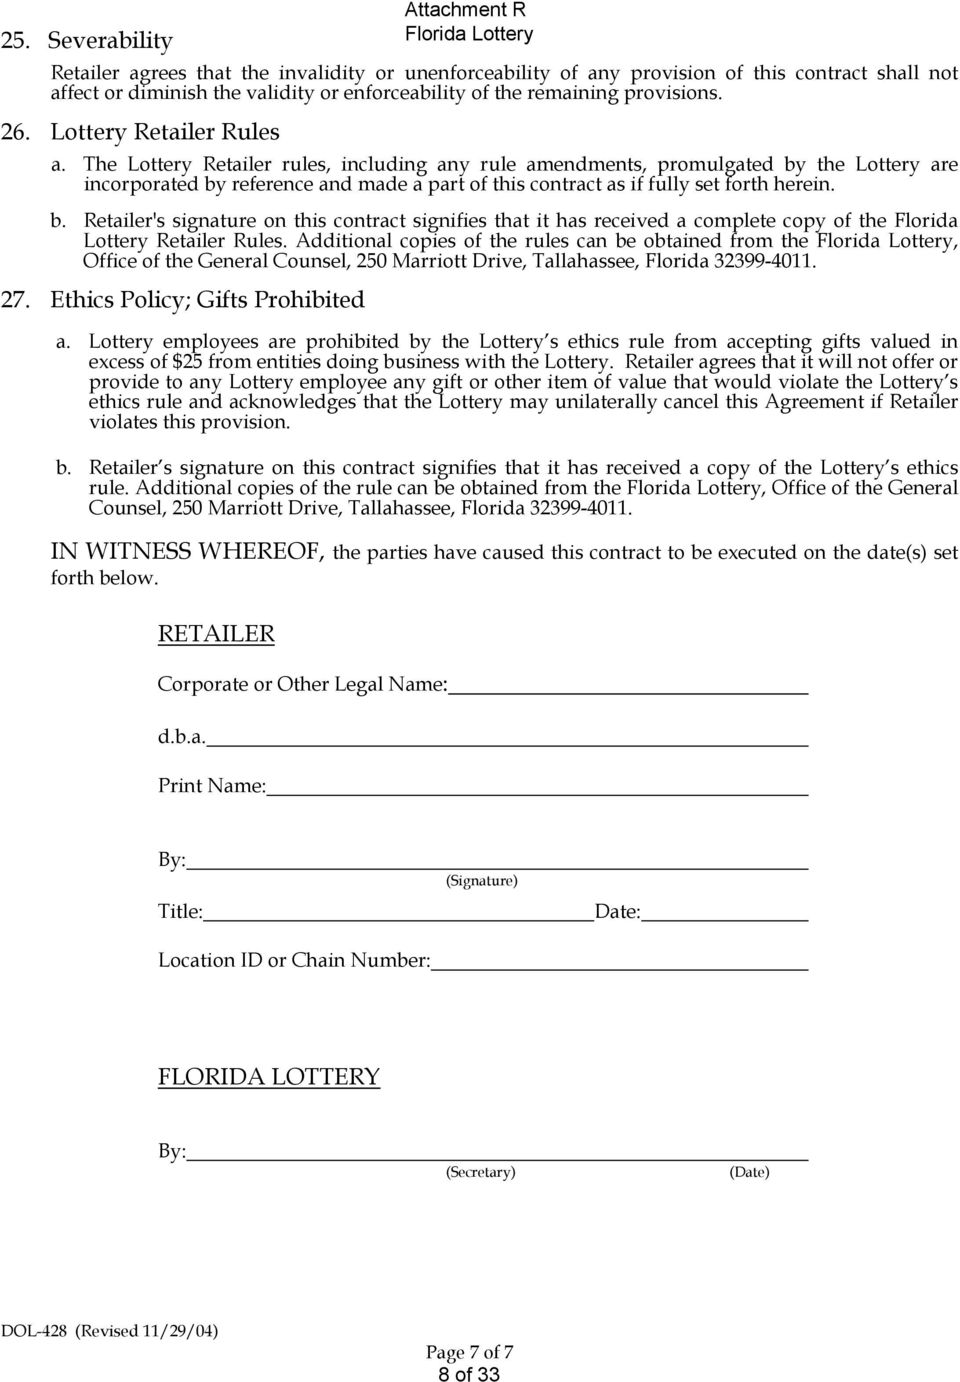 The Lottery Retailer rules, including any rule amendments, promulgated by the Lottery are incorporated by reference and made a part of this contract as if fully set forth herein. b. Retailer's signature on this contract signifies that it has received a complete copy of the Florida Lottery Retailer Rules.